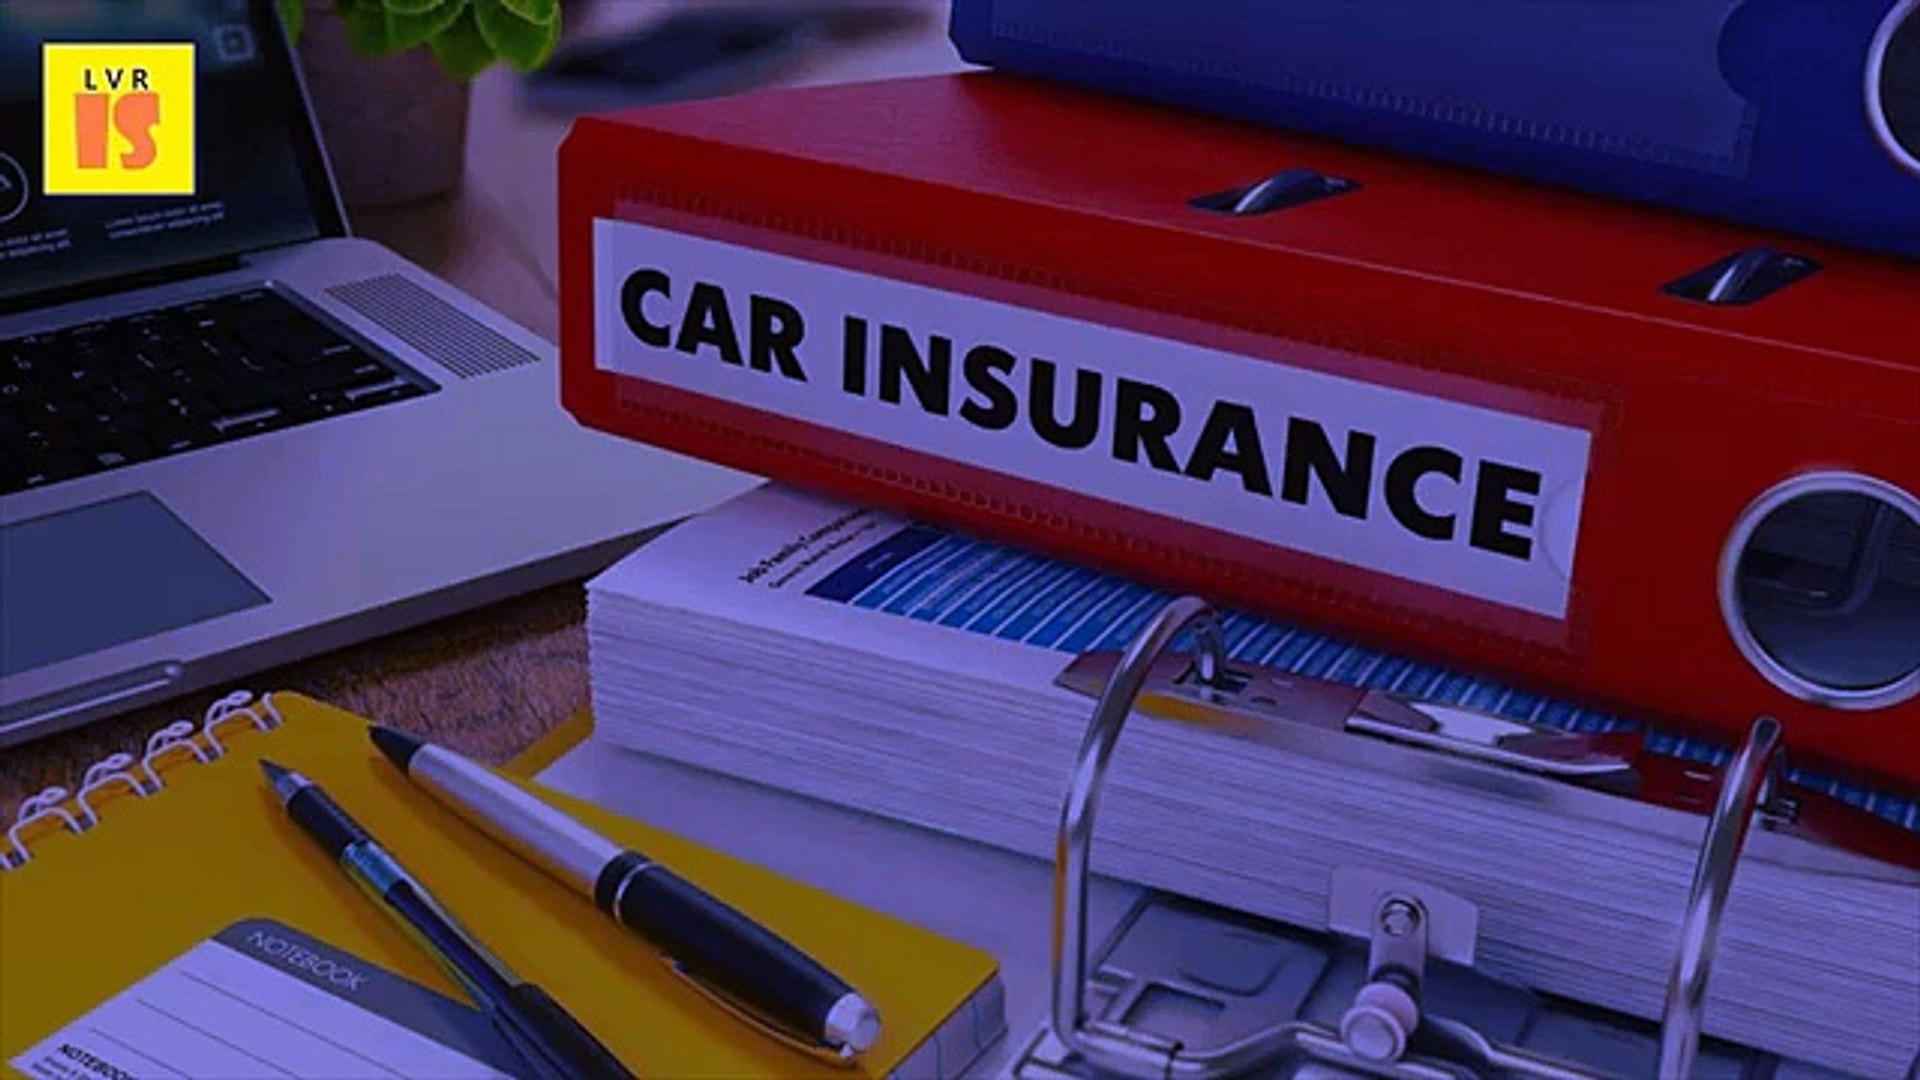 Getting Auto Insurance Online Can Mean Getting the Best Deal - 2017 Car Insurance Tips